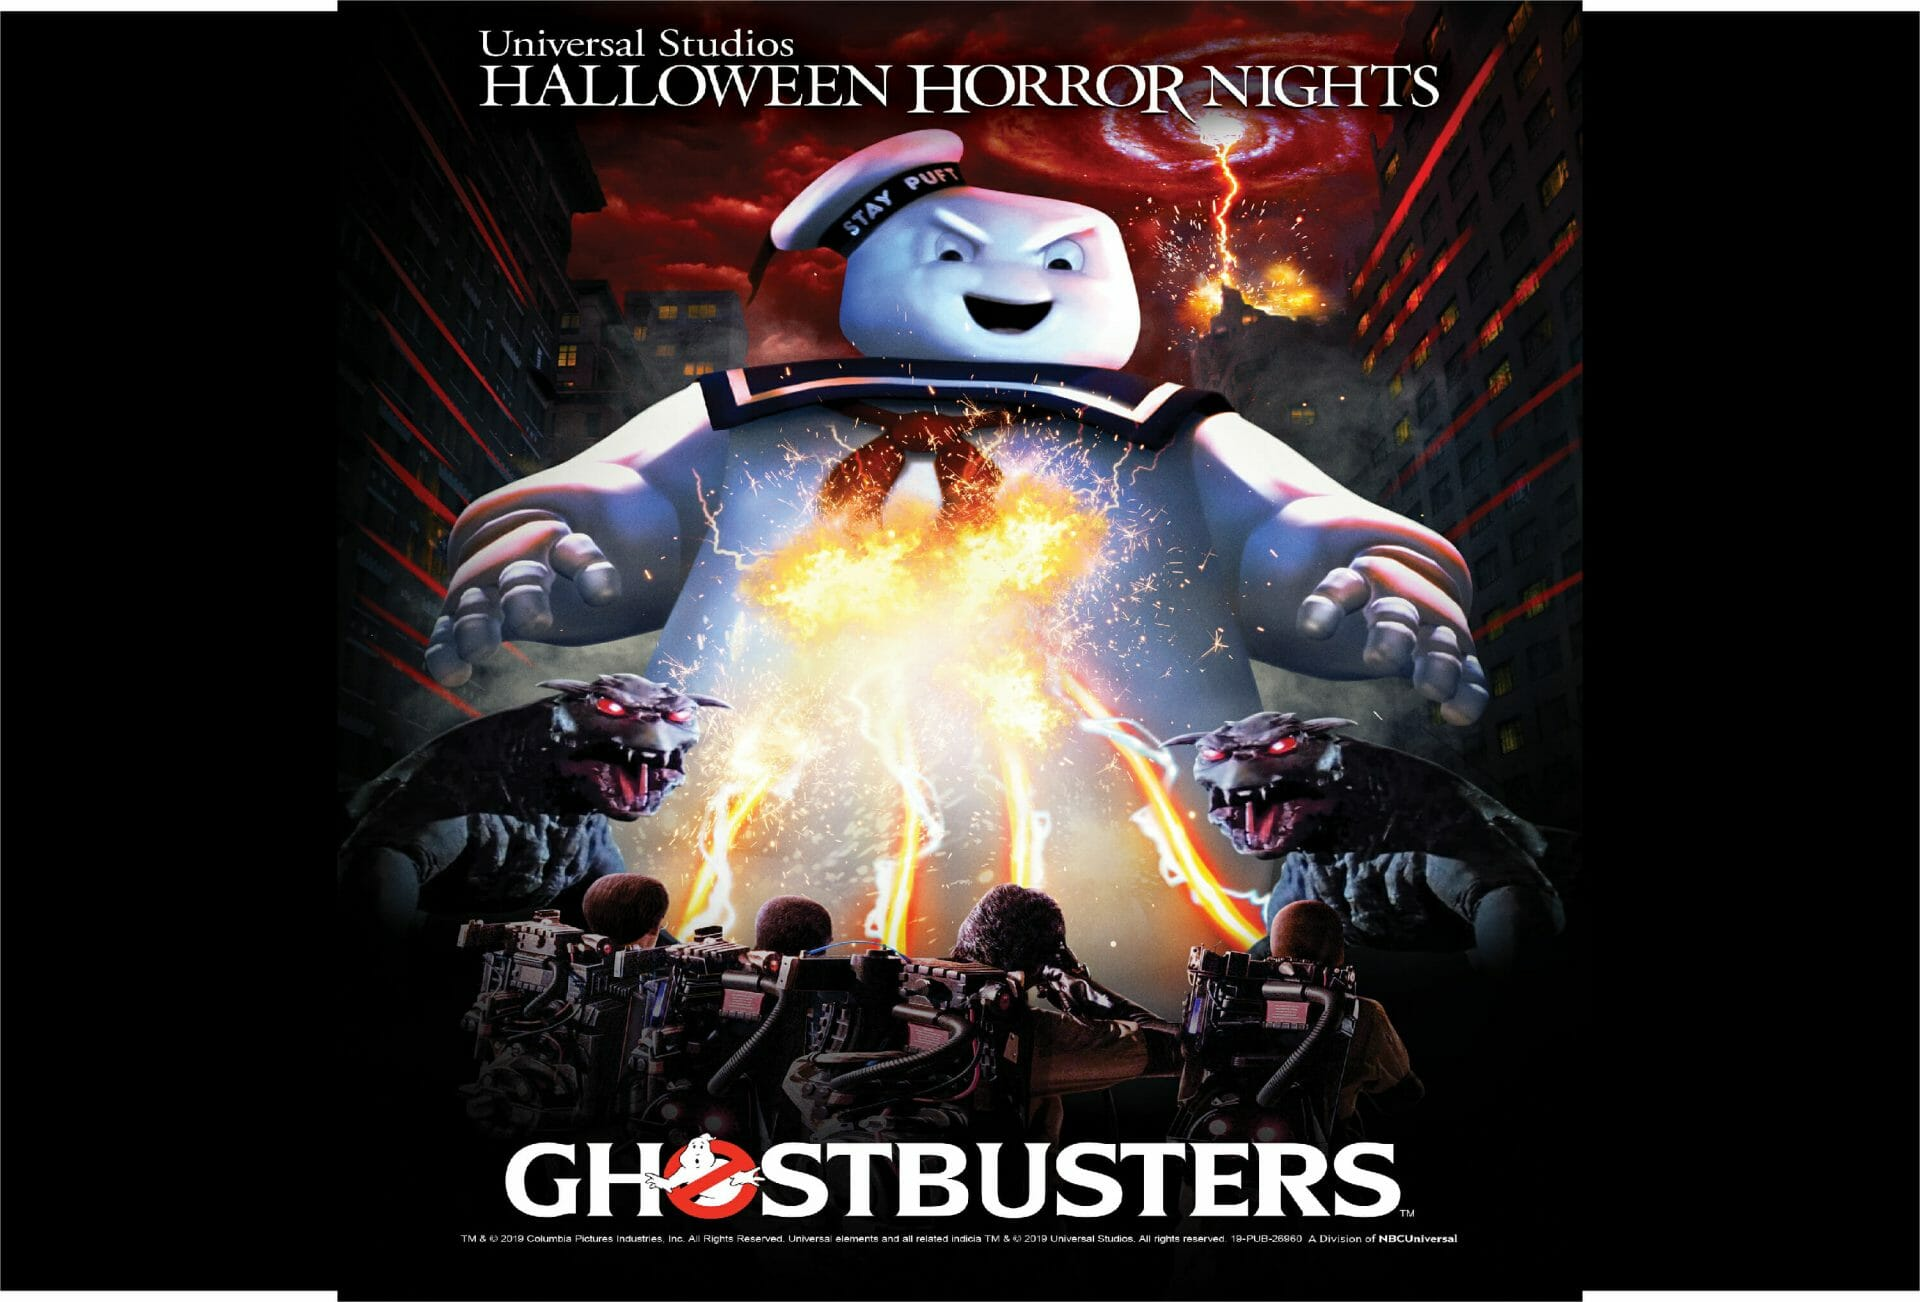 """Universal Studios welcomes GHOSTBUSTERS for the first time ever to """"HALLOWEEN HORROR NIGHTS"""""""